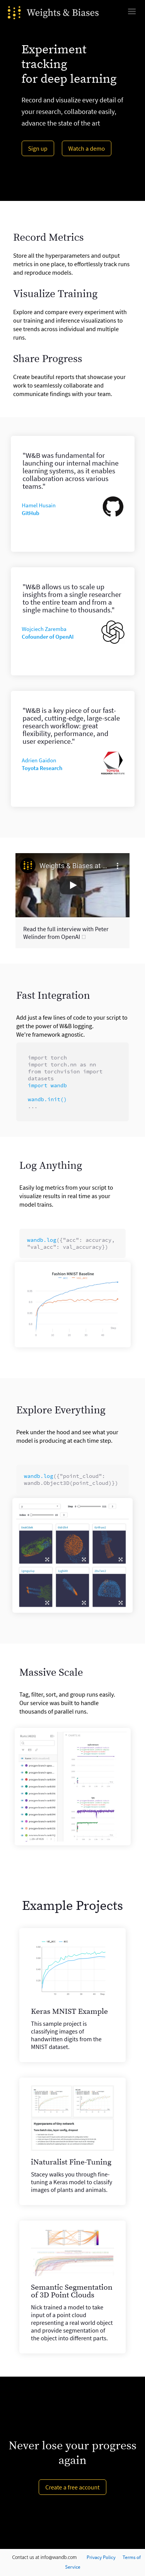 Example of Design for Science, Computer Science, Mobile Landing Page by wandb.com | Mobile Landing Page Design